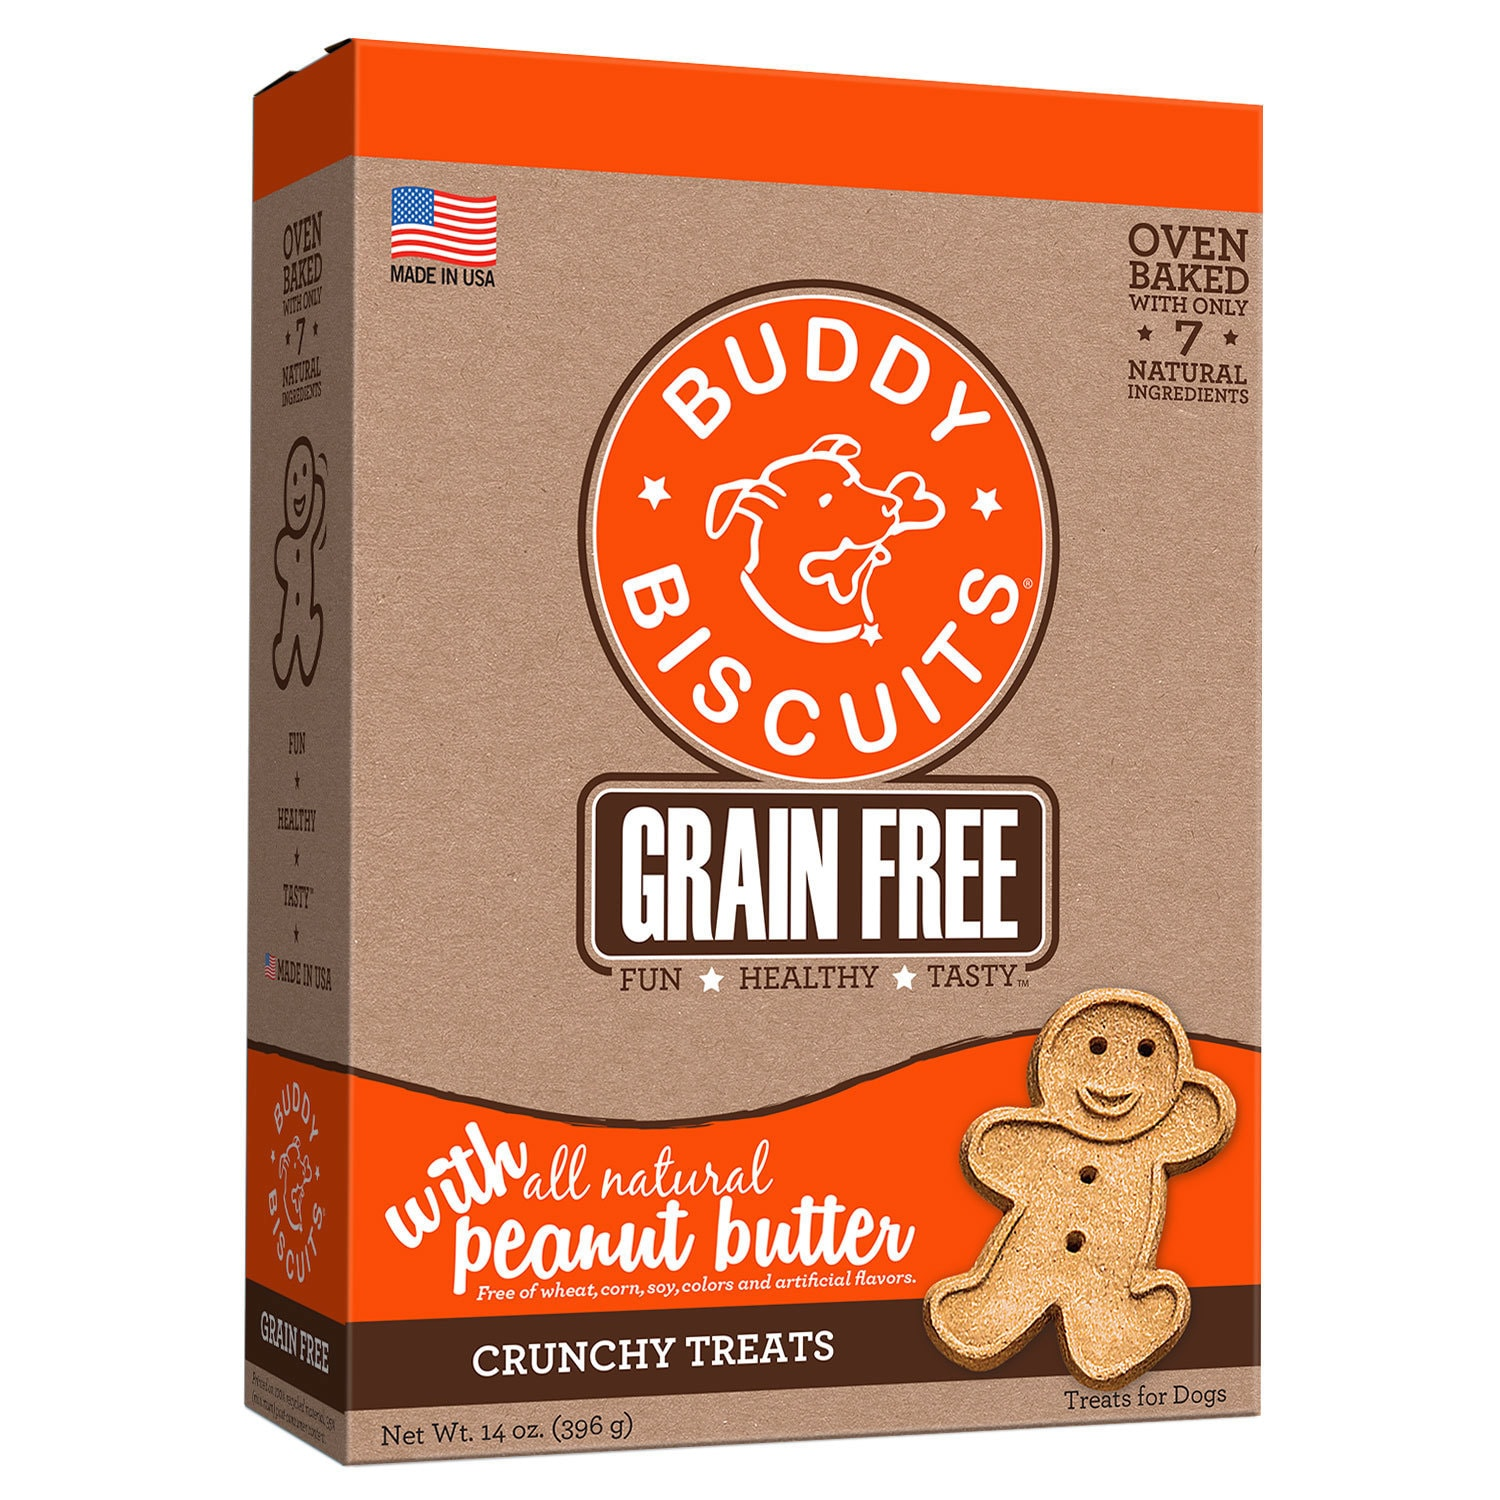 Cloud Star Oven Baked Buddy Biscuits Homestyle Peanut But...